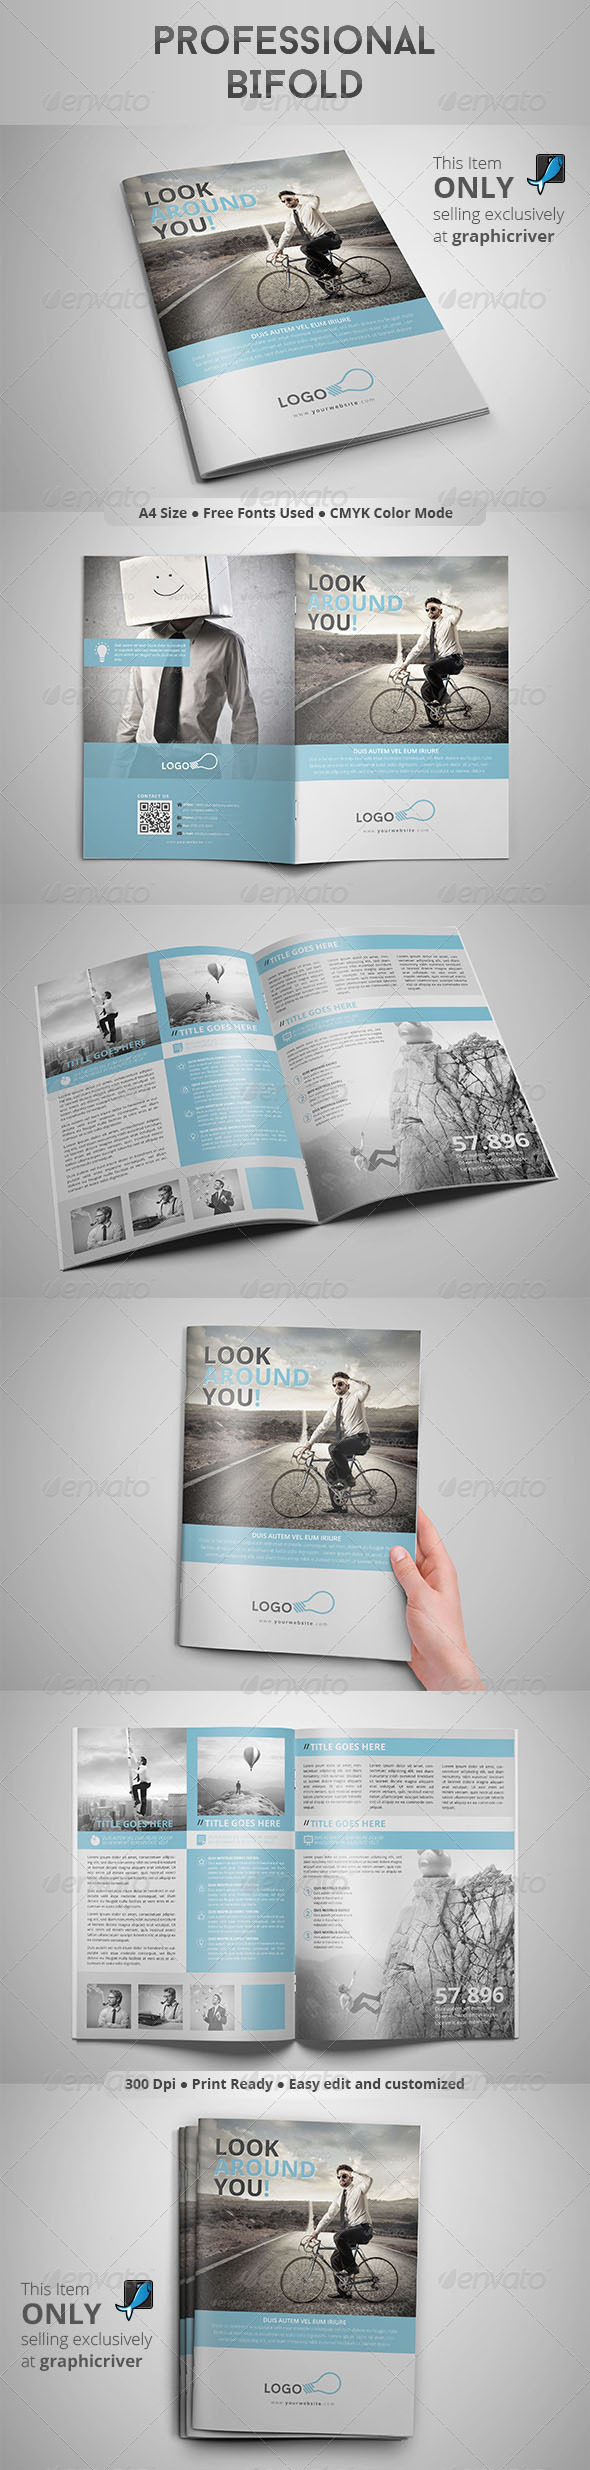 GraphicRiver Professional Bifold 8506160